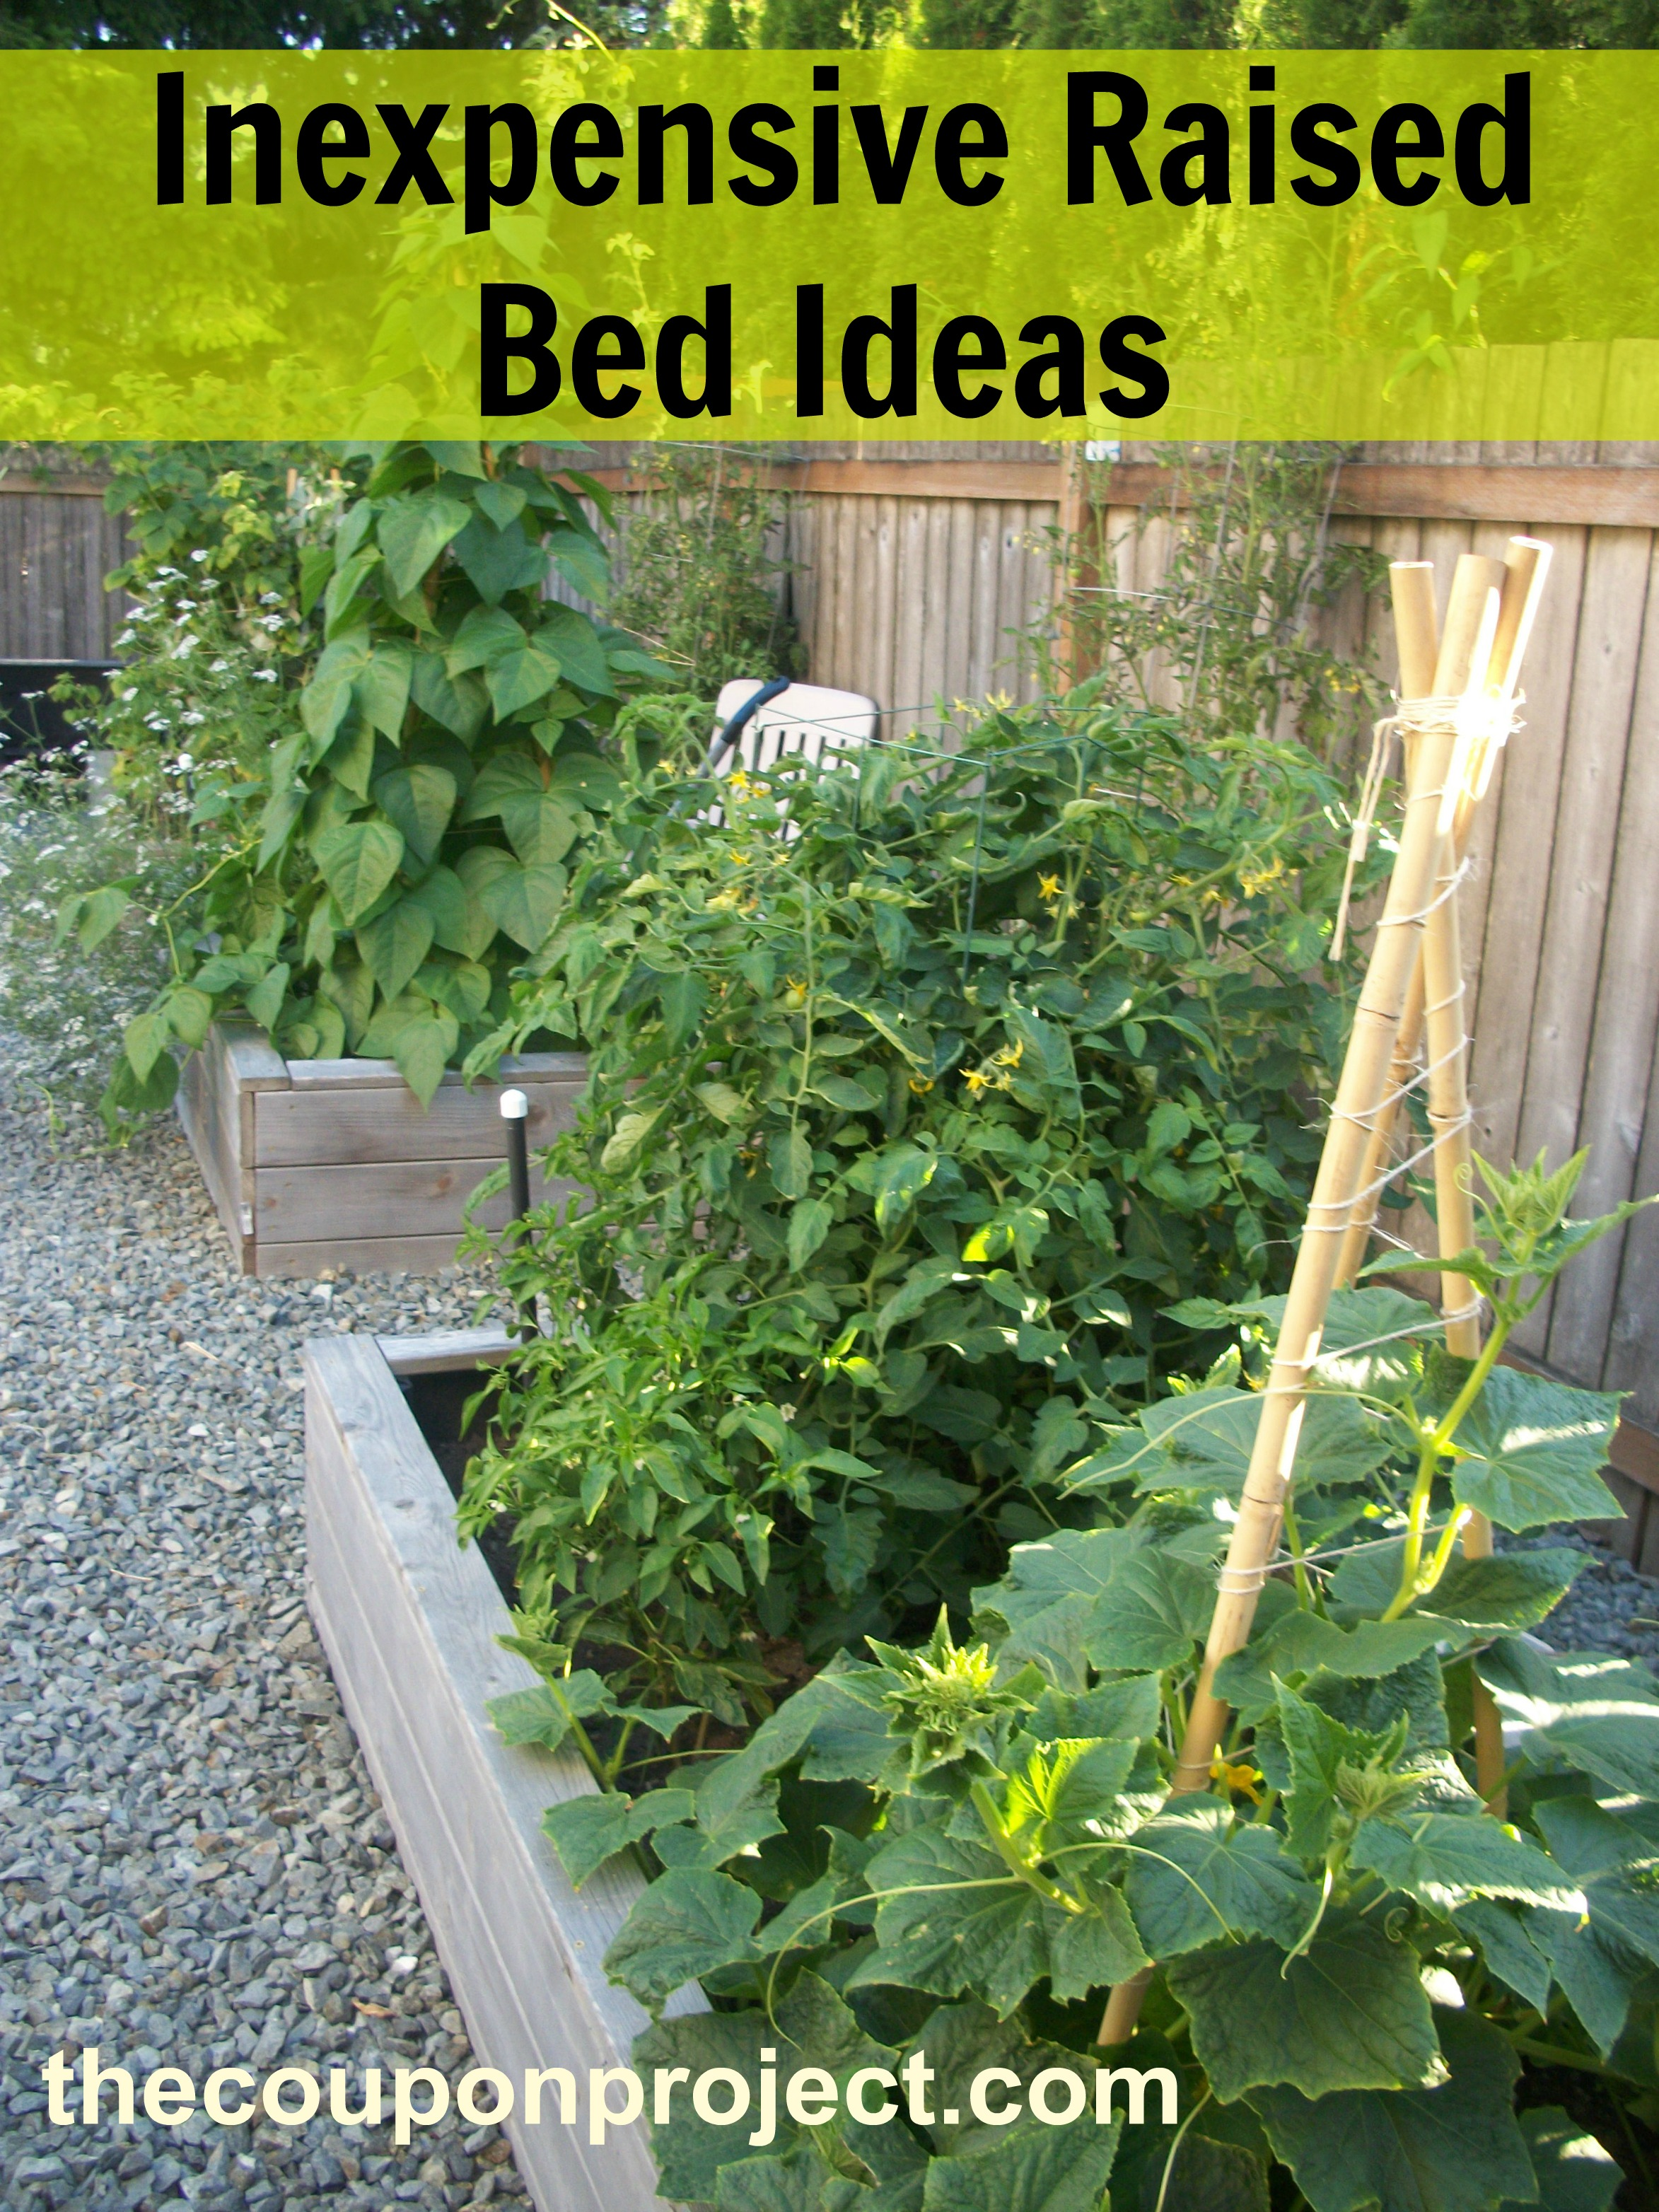 inexpensive raised garden bed ideas